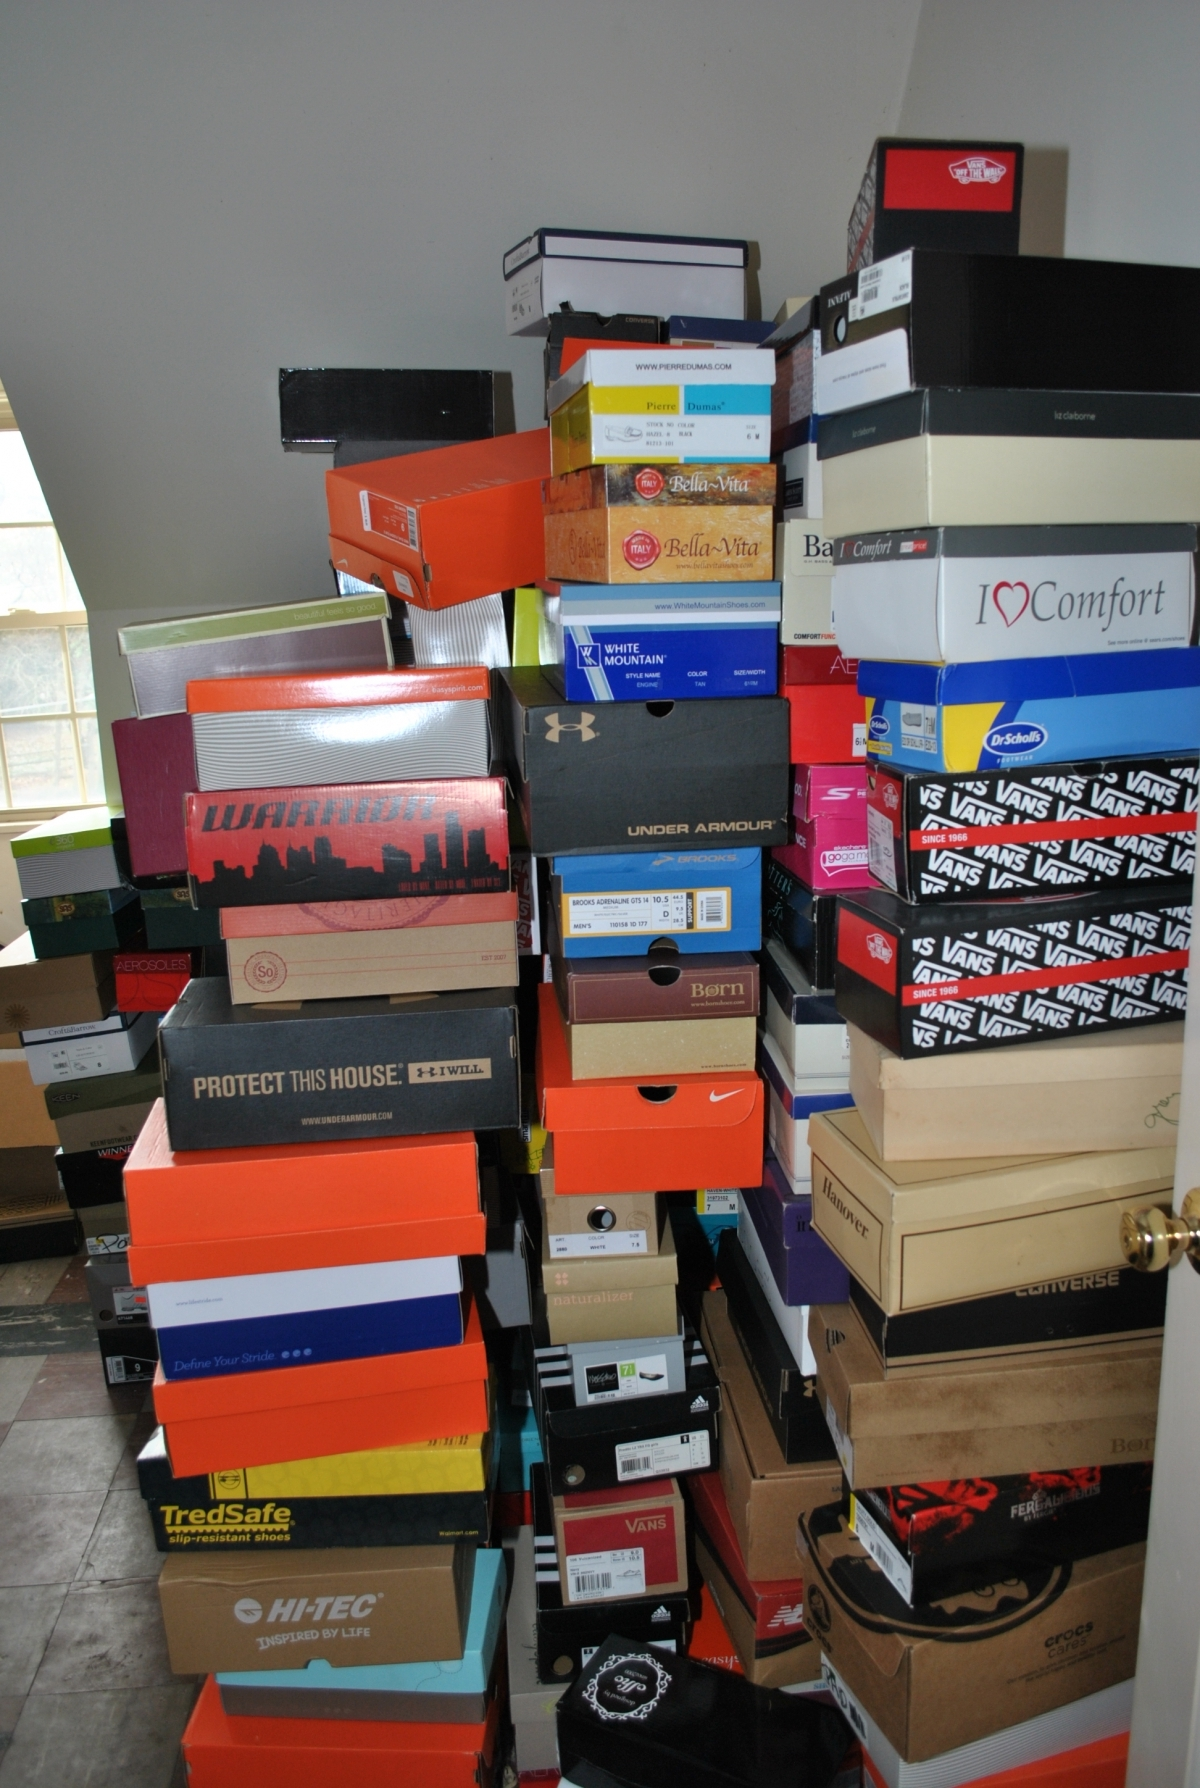 midhigh-shoeboxes_0519